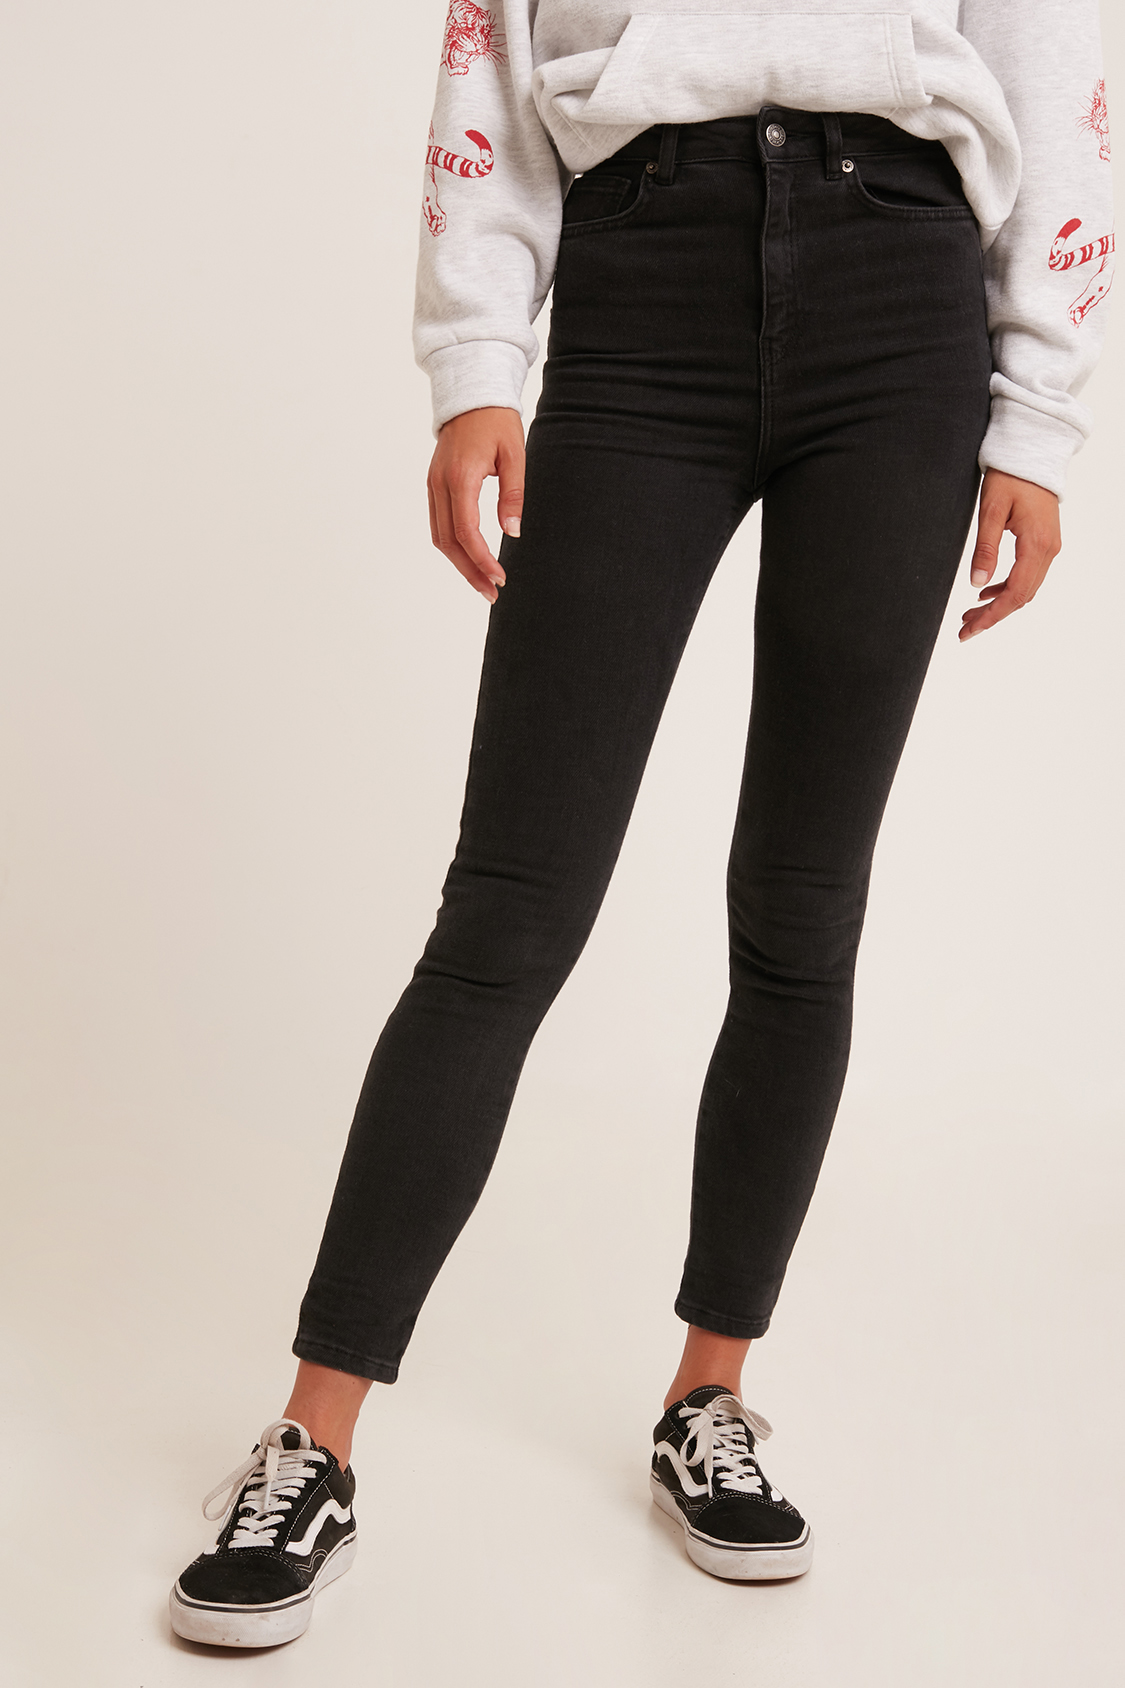 0b4842071dbf Super high waisted skinny jeans